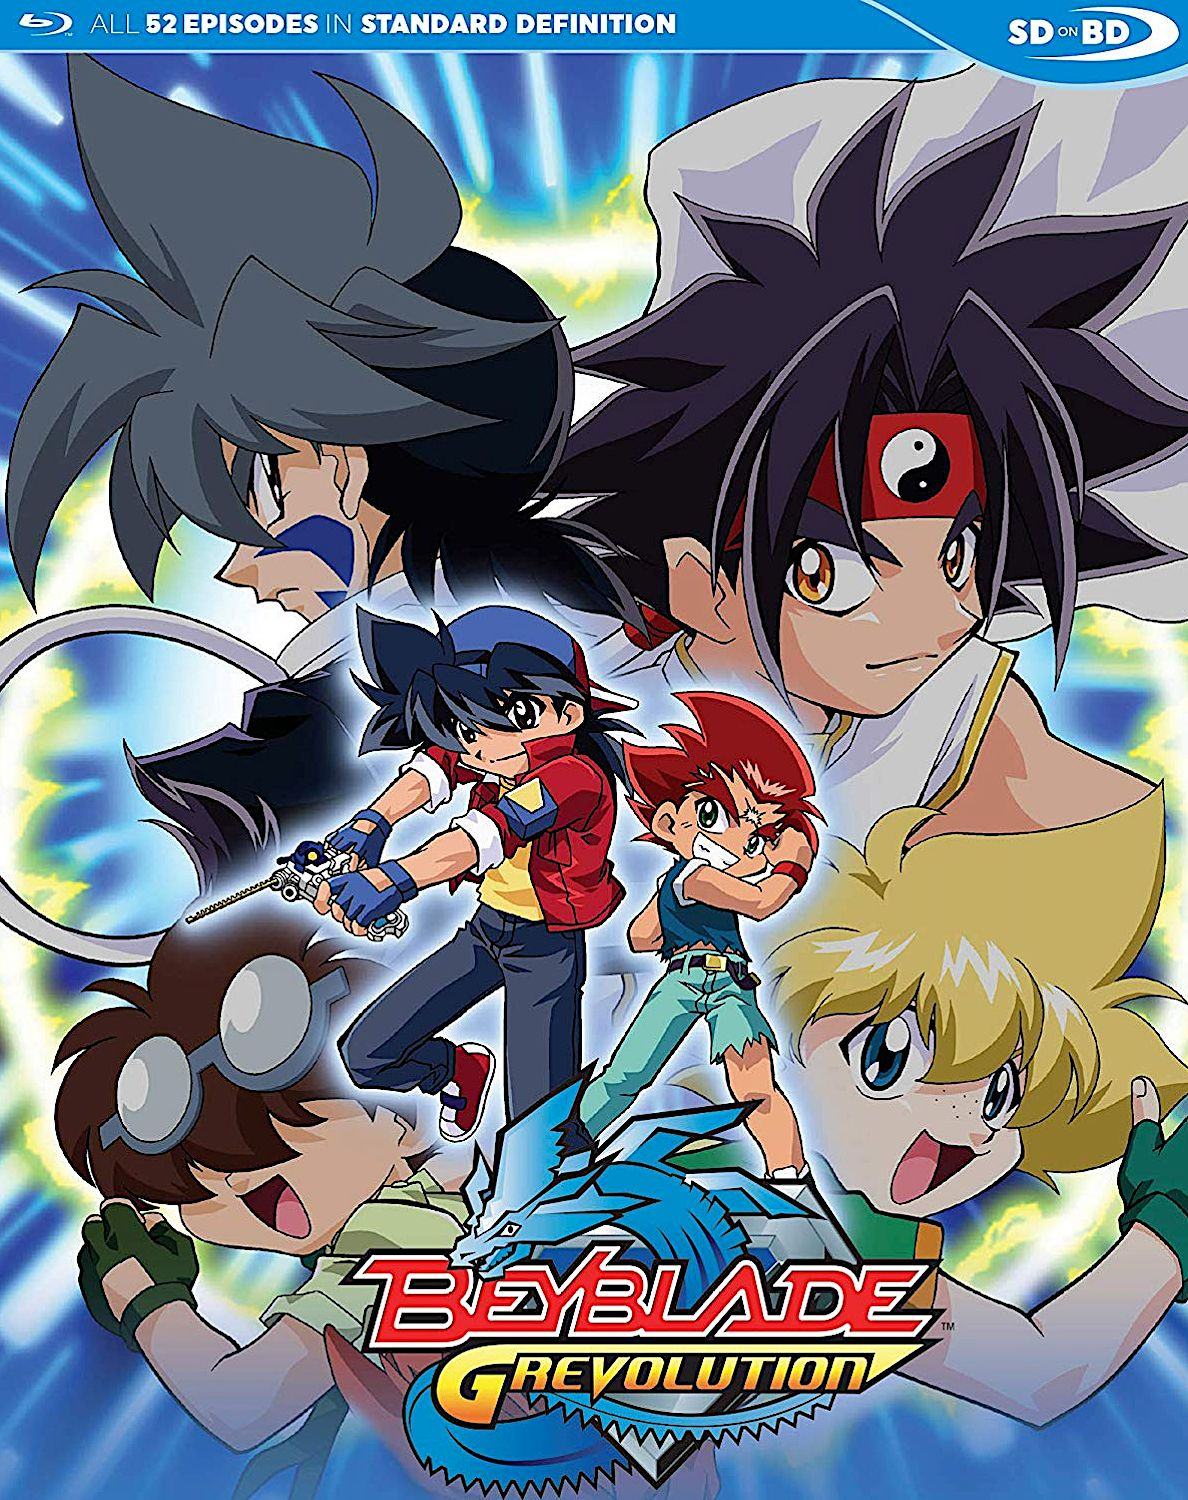 BEYBLADE GREVOLUTION THE COMPLETE SERIES BLURAY SET